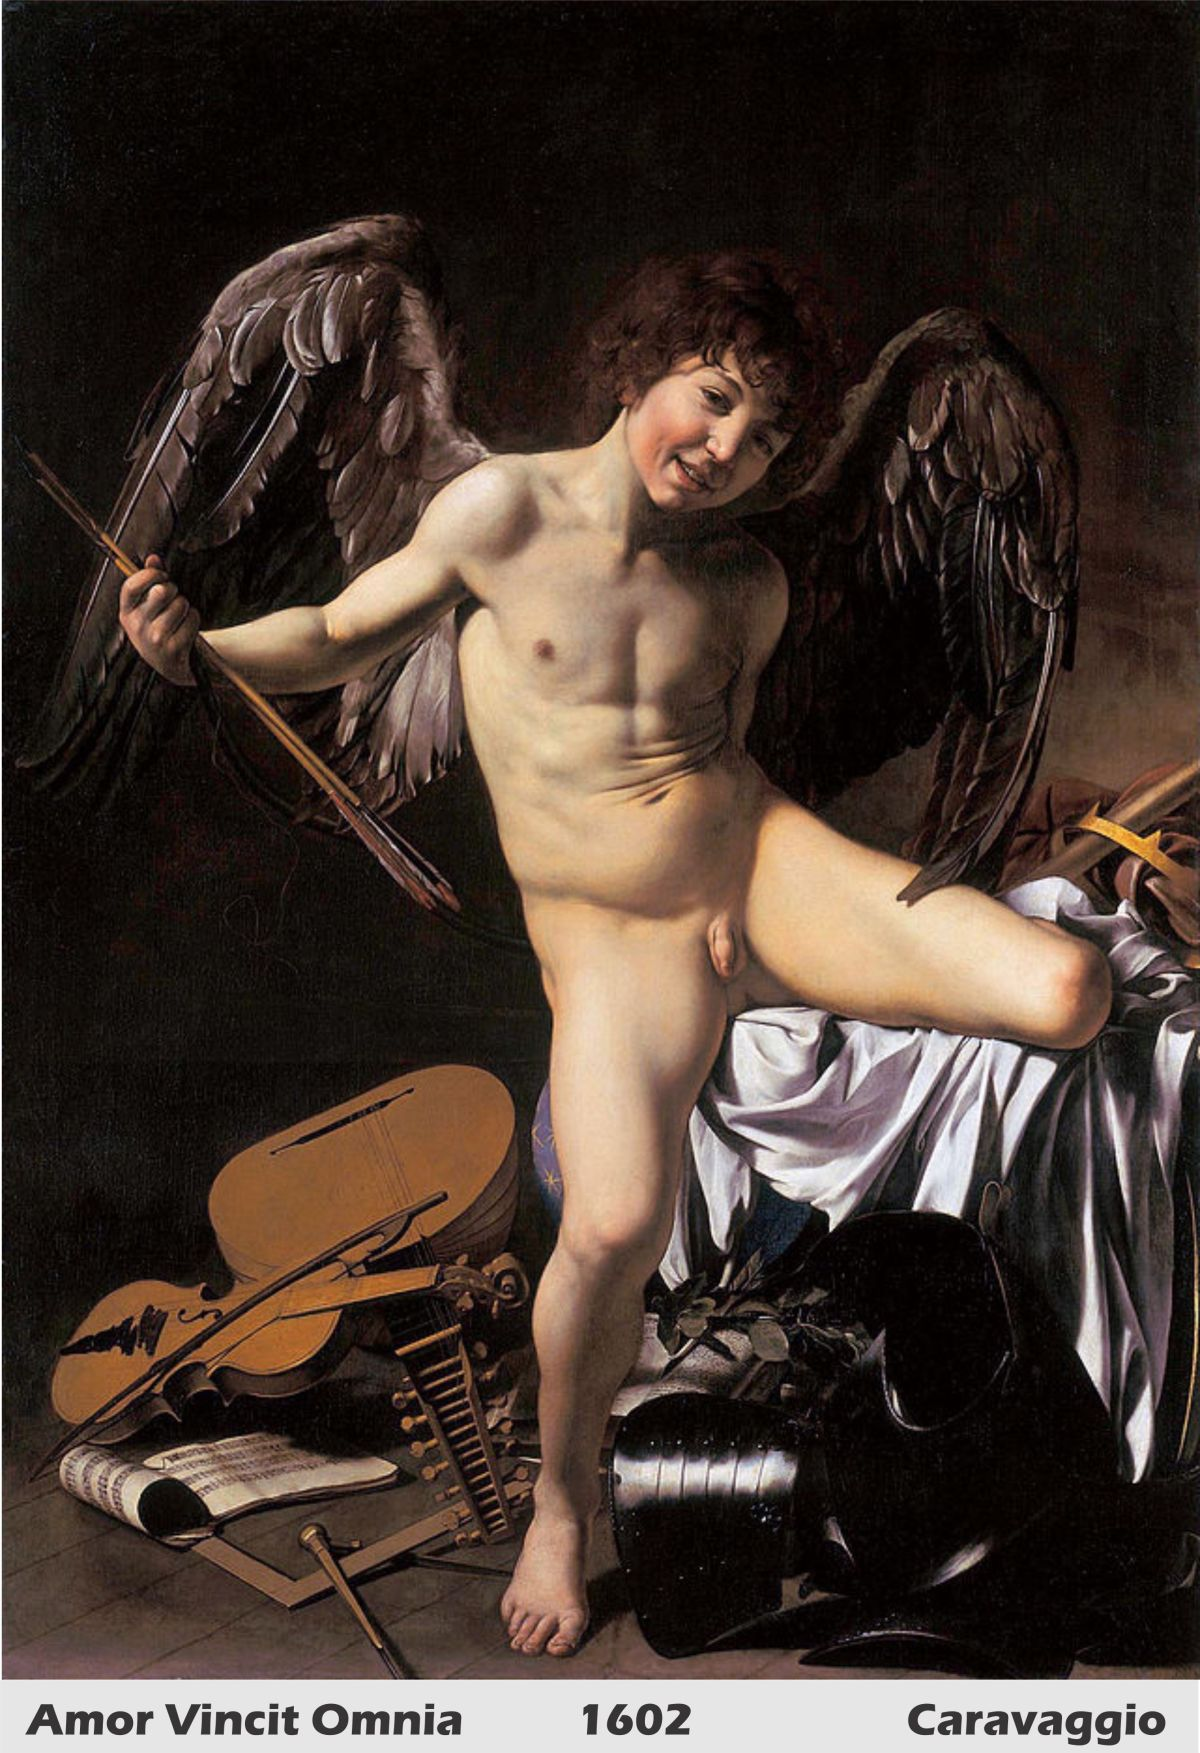 Amor Vincit Omnia by Caravaggio- History Painting